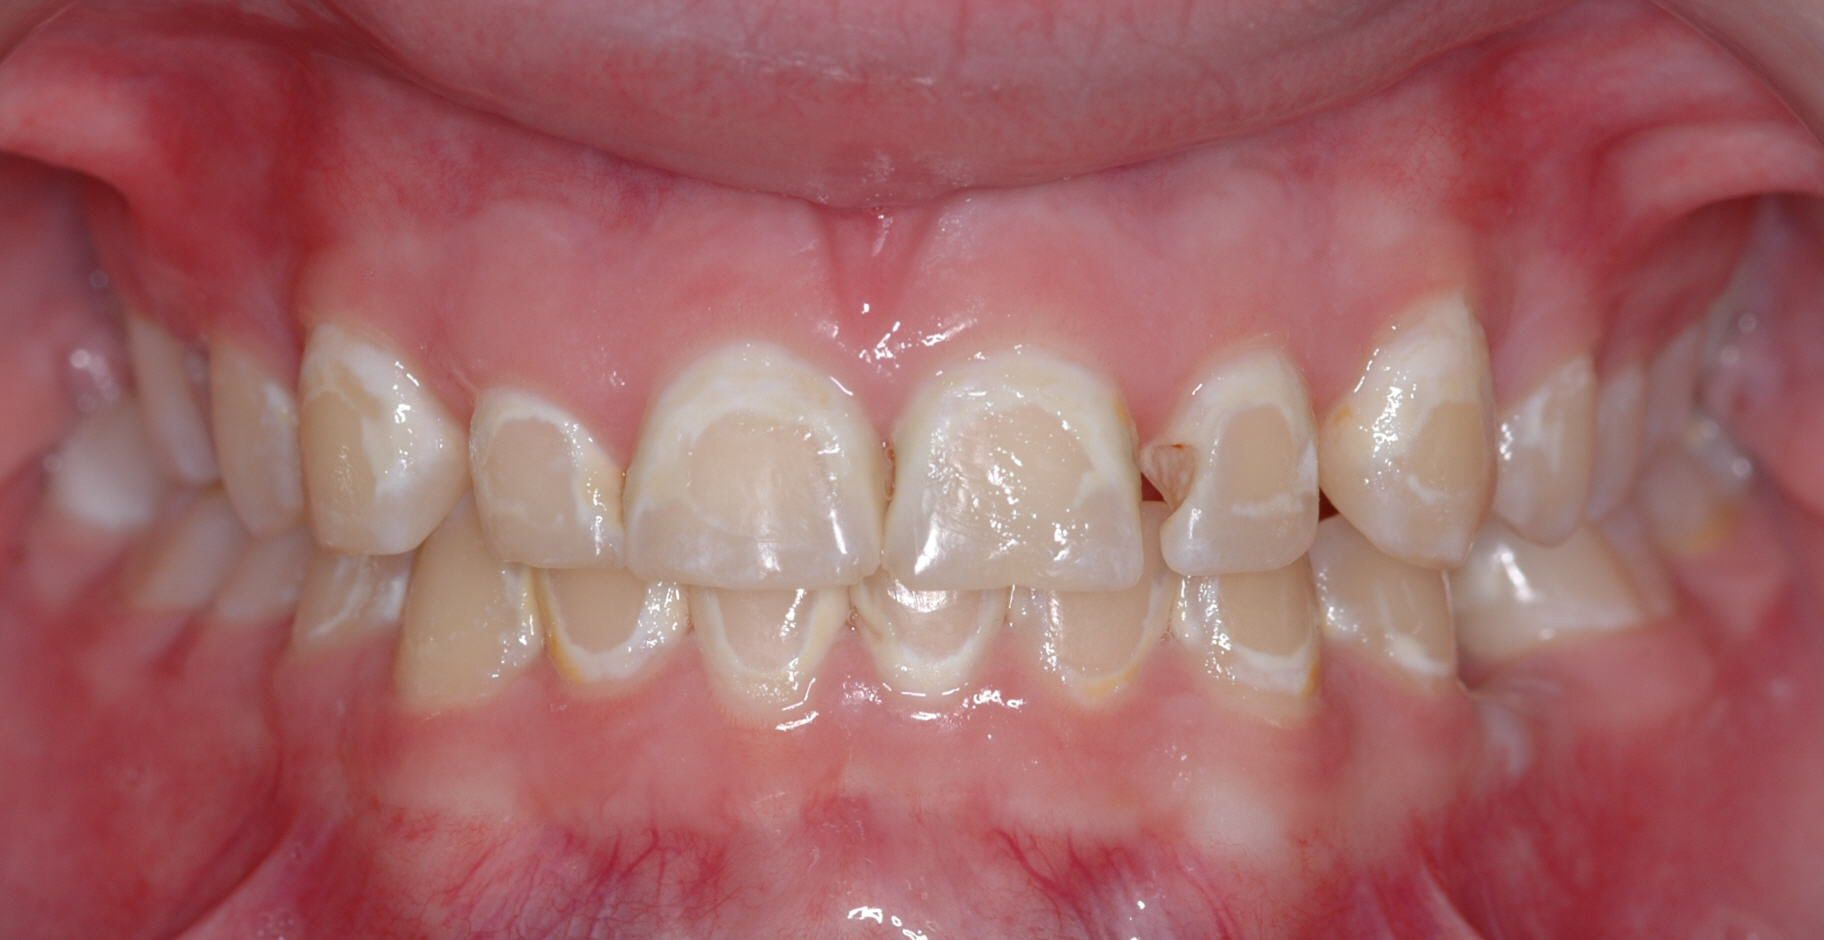 The hyper-white areas are examples of tooth decalcification or demineralization after chronic poor brushing with braces.  Further demineralization can lead to a cavity